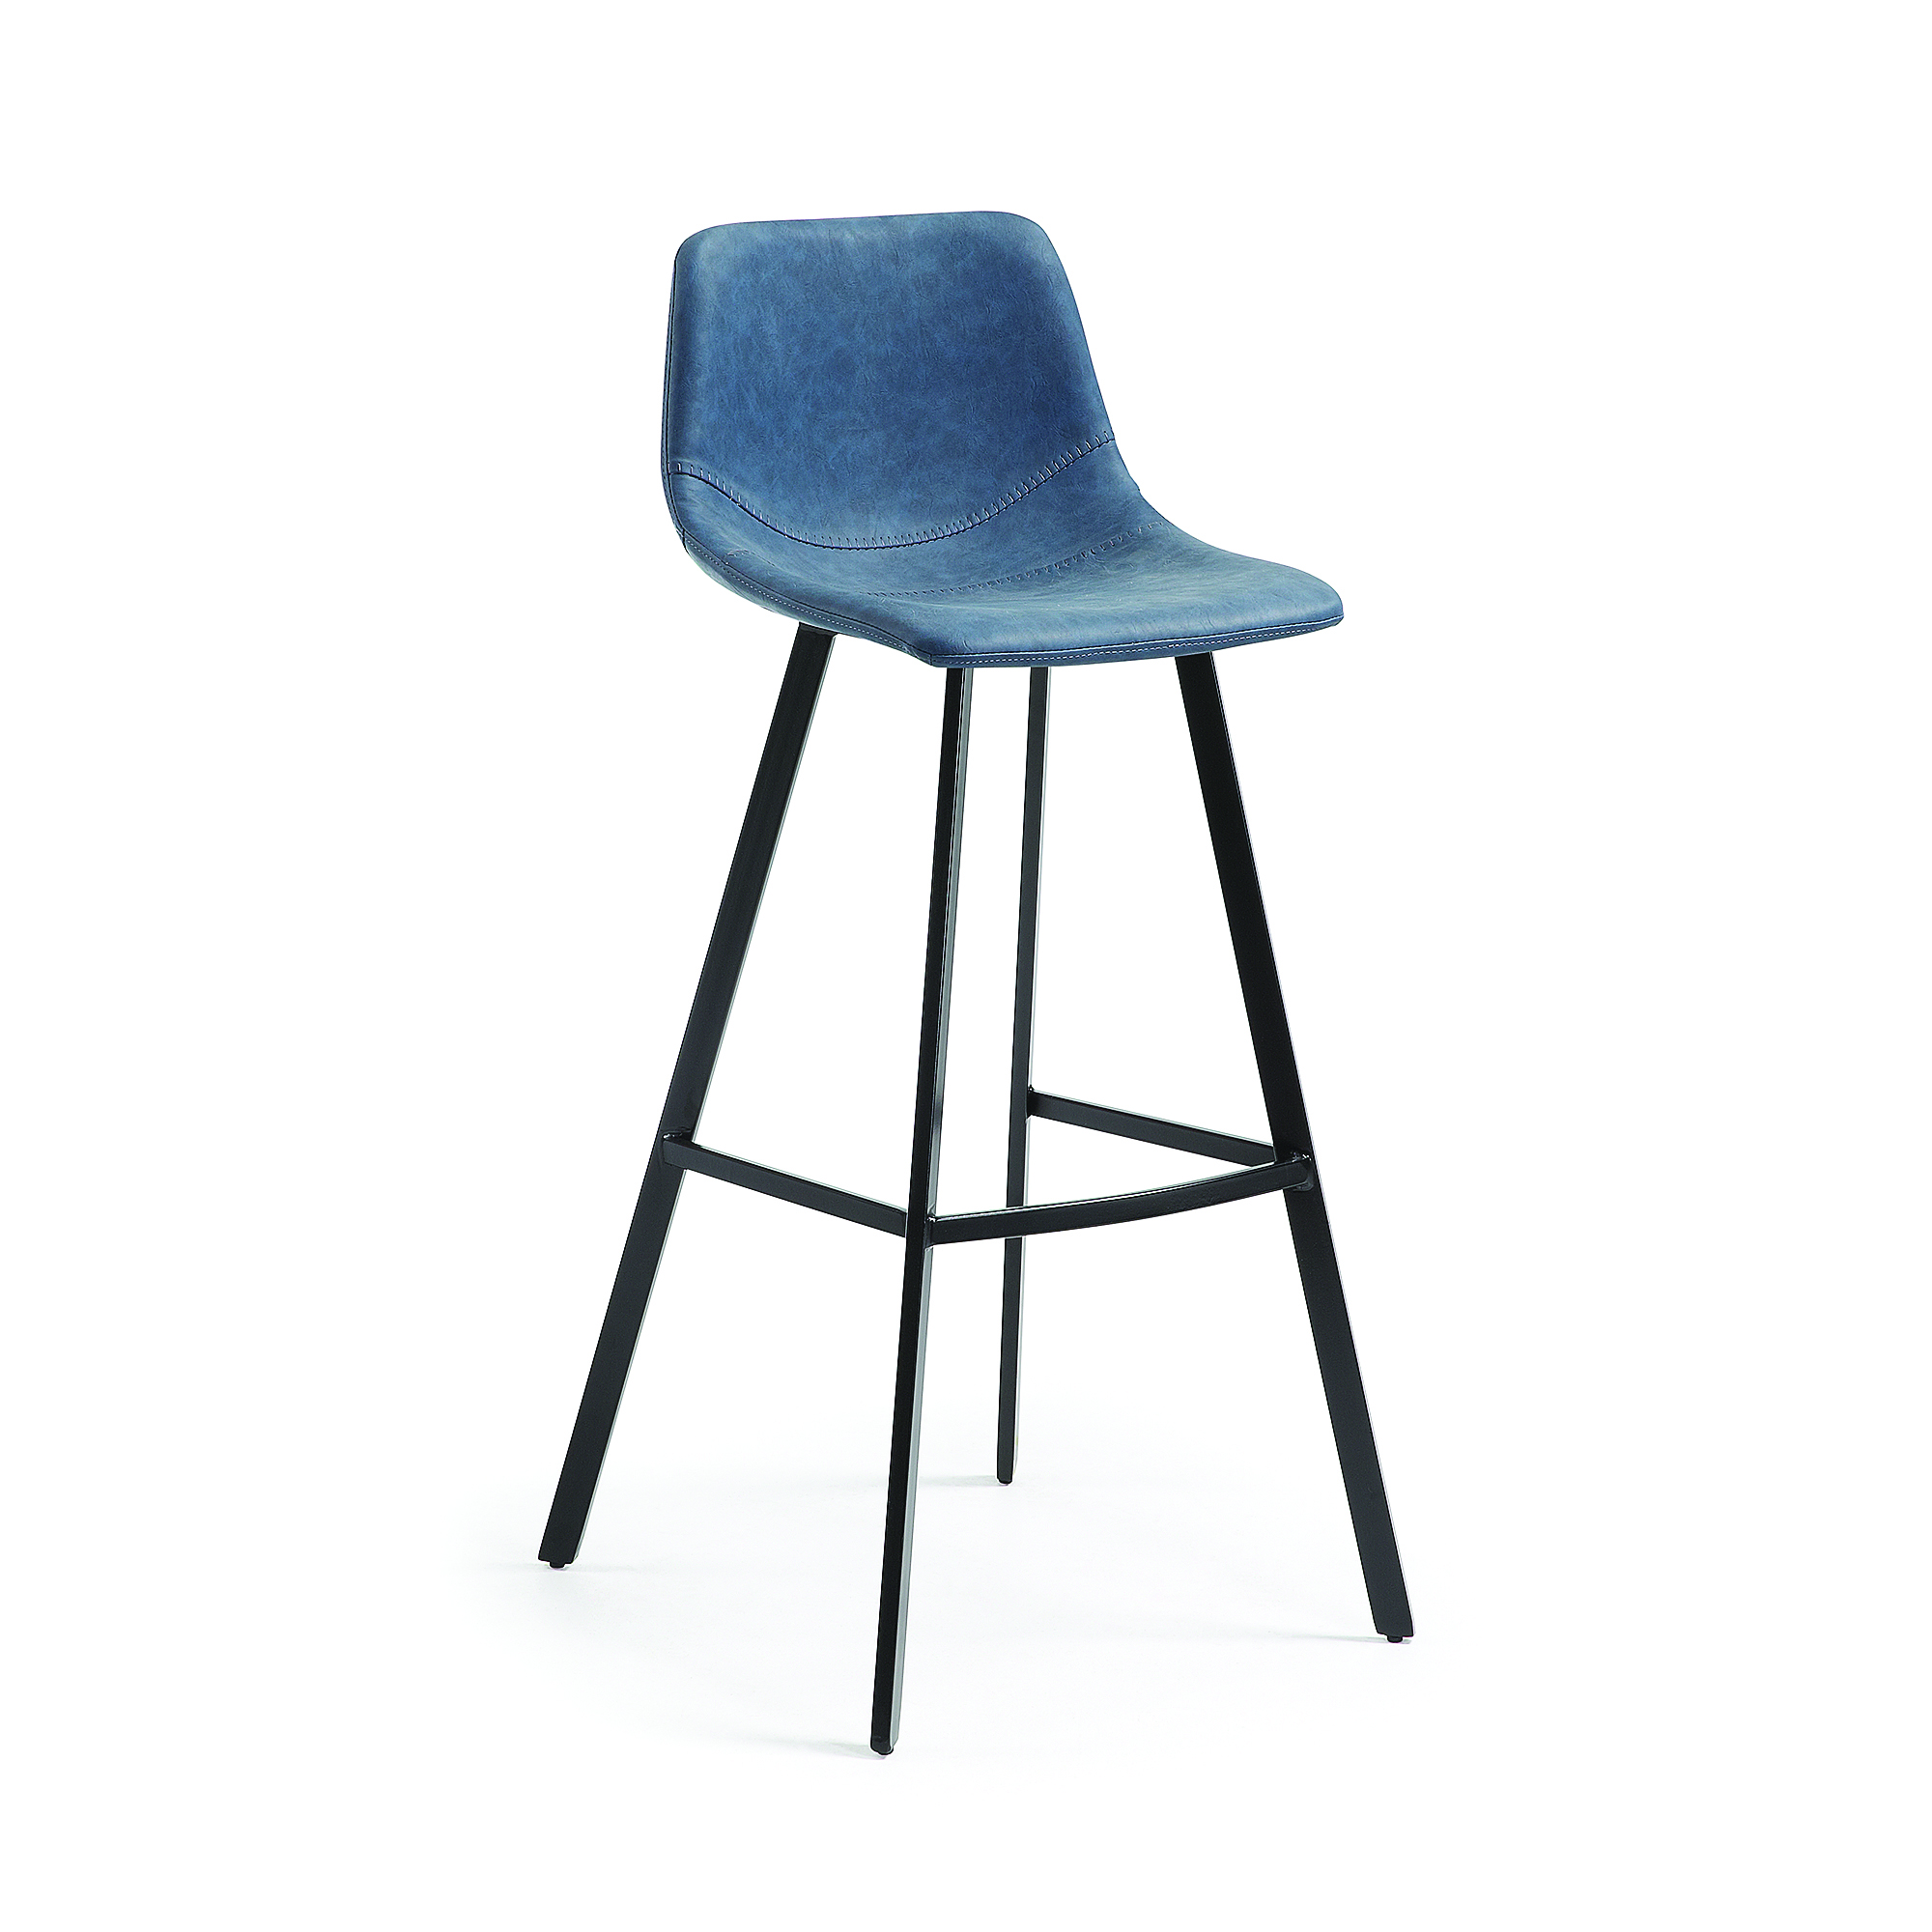 Andi Counter Height Stool